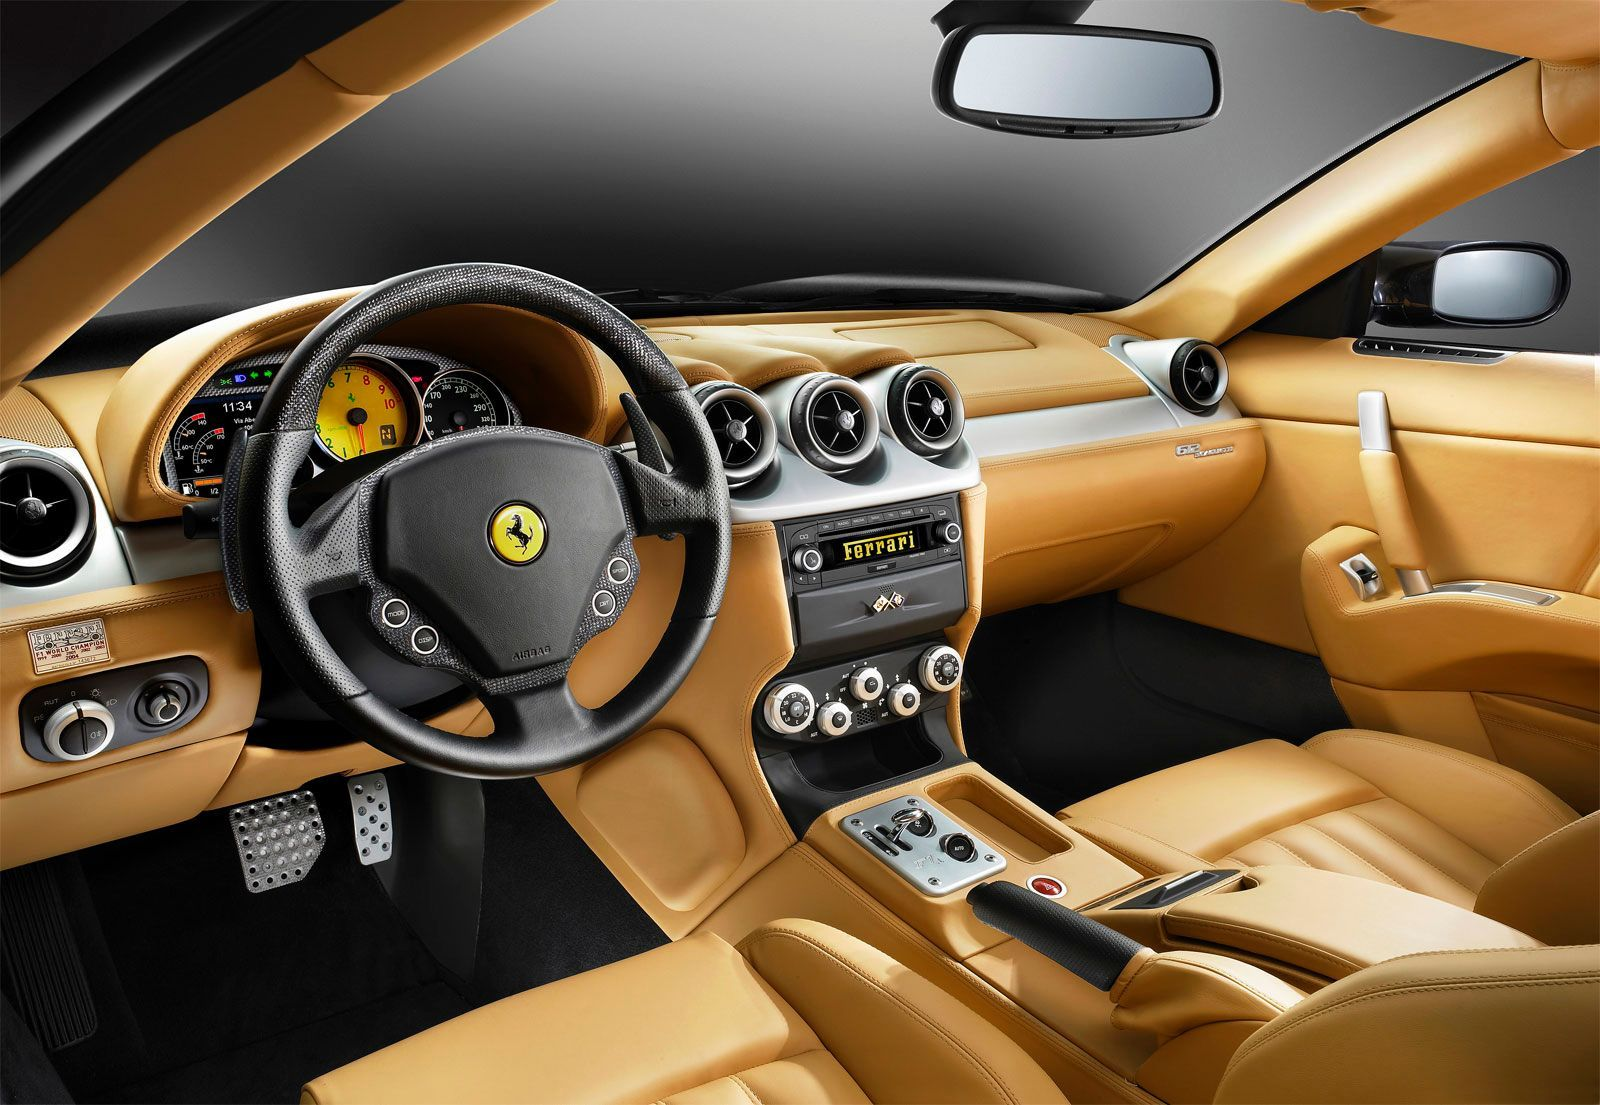 Best Interior Cars Top 50 Luxury Car Interior Designs Cars Luxury Cars Cars Ferrari 612